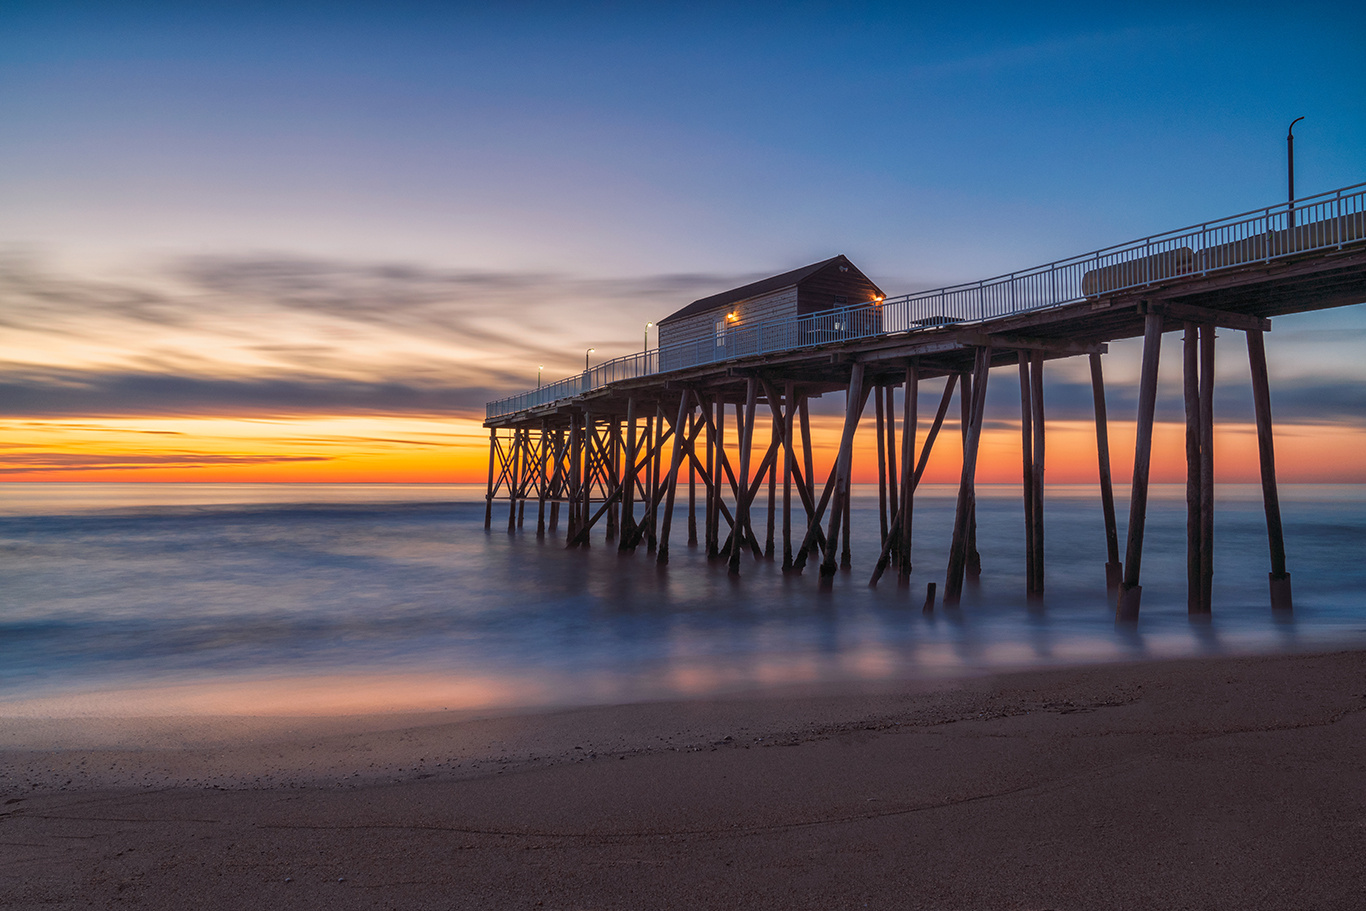 Sunrise at Belmar Pier by Brent Guiliano